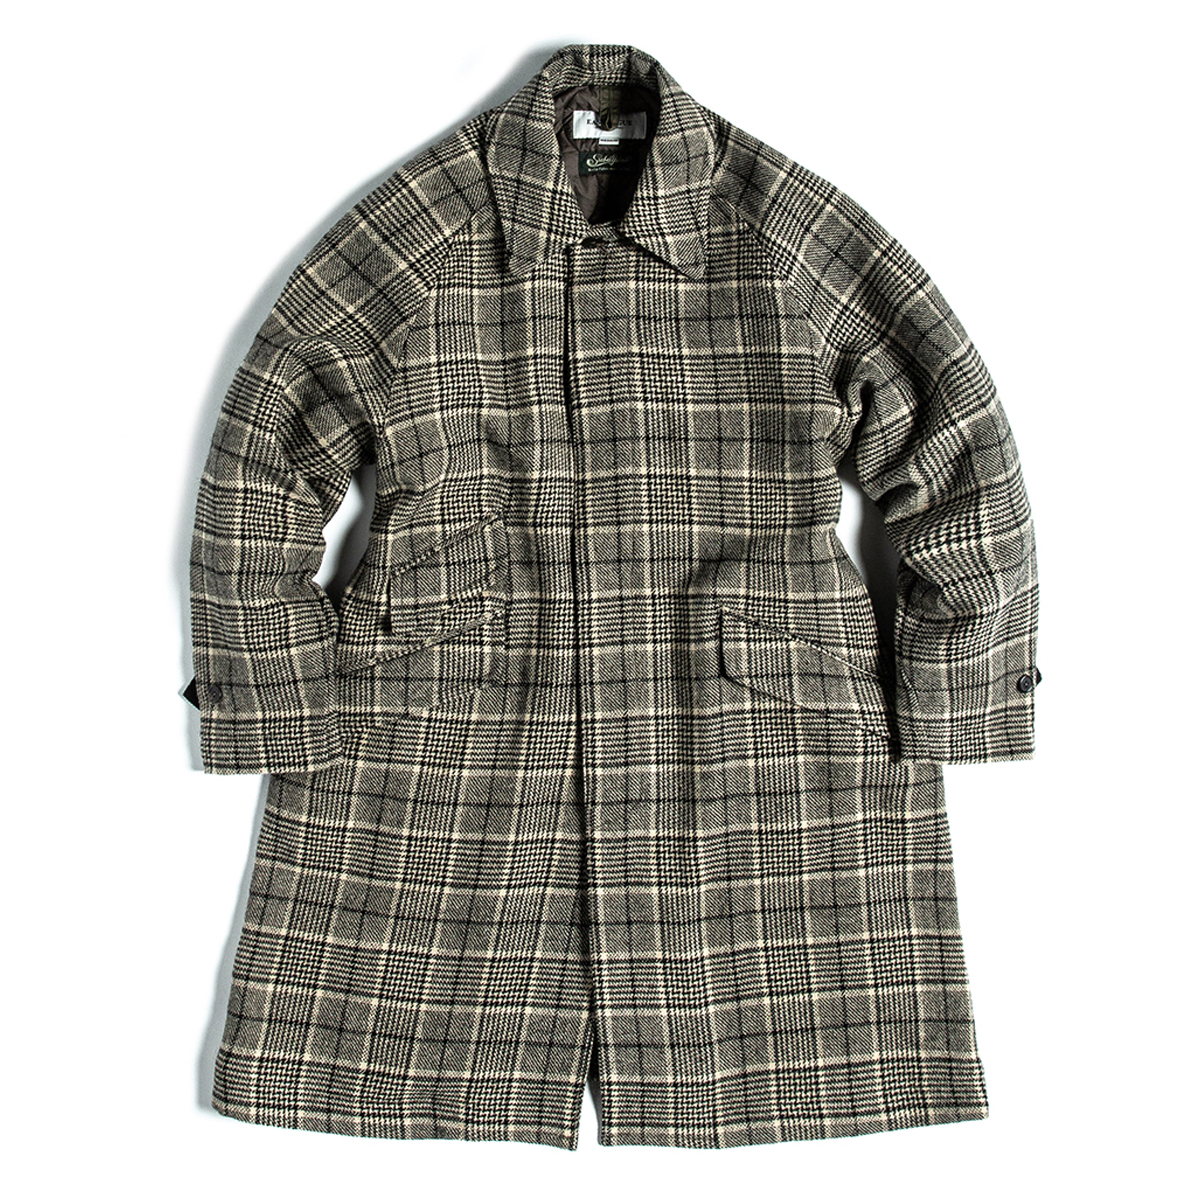 [EASTLOGUE] BALMACAAN COAT 'BEIGE & BLACK CHECK'